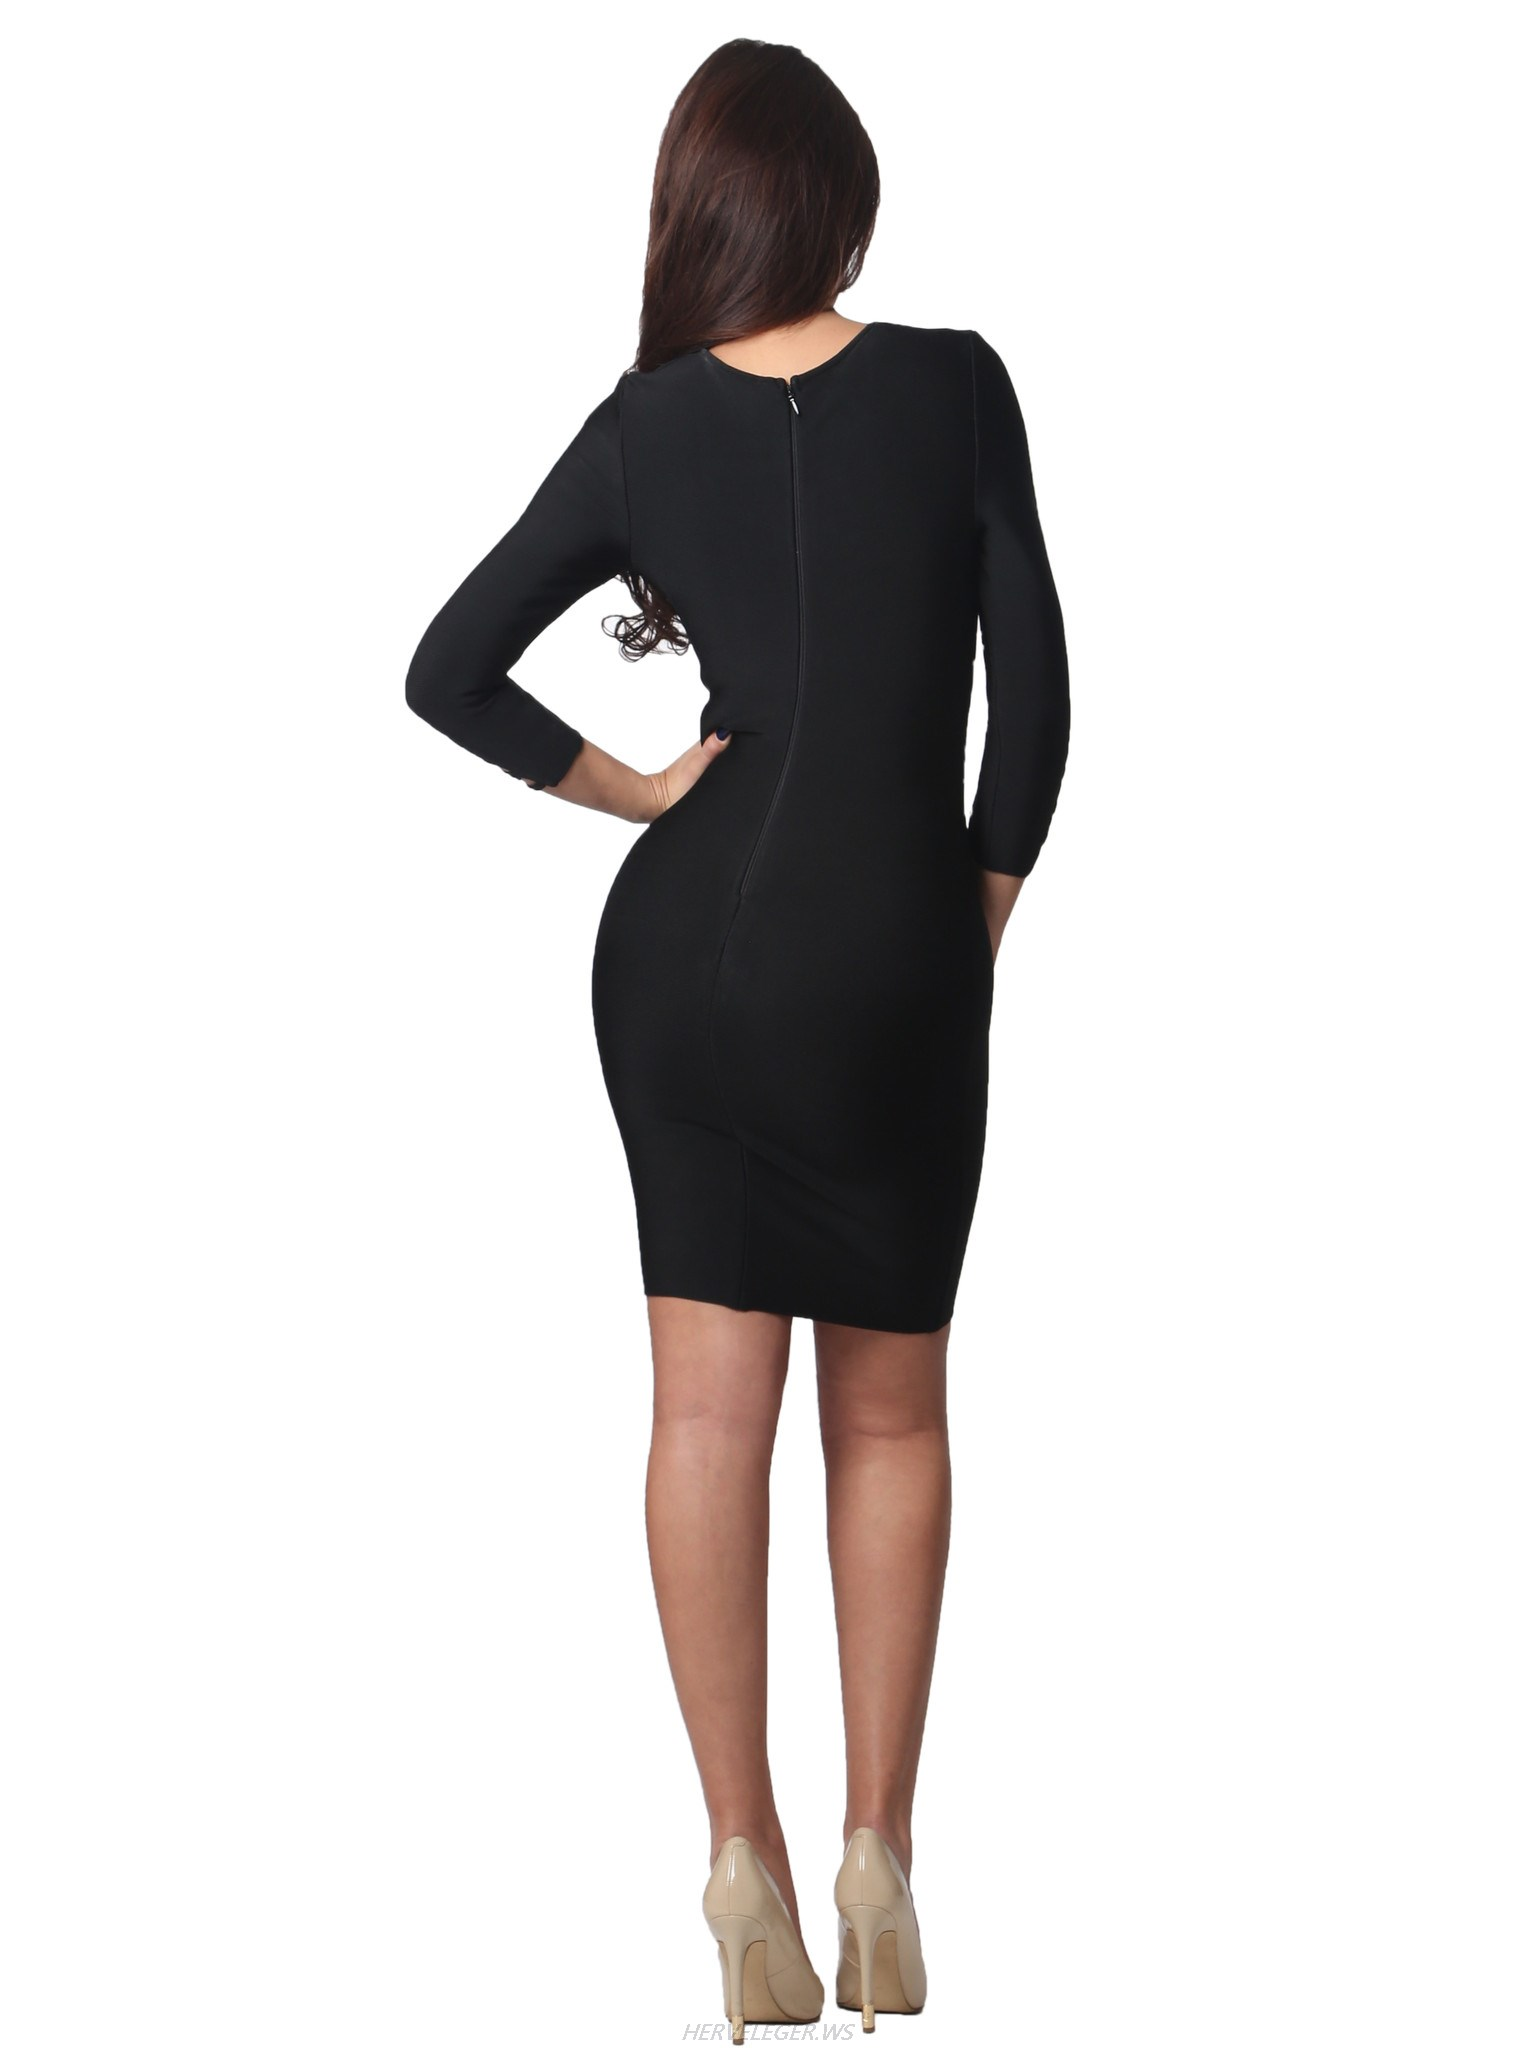 Herve Leger Gia Black Asymmetric Cut Out Lace Up Long Sleeve Dress